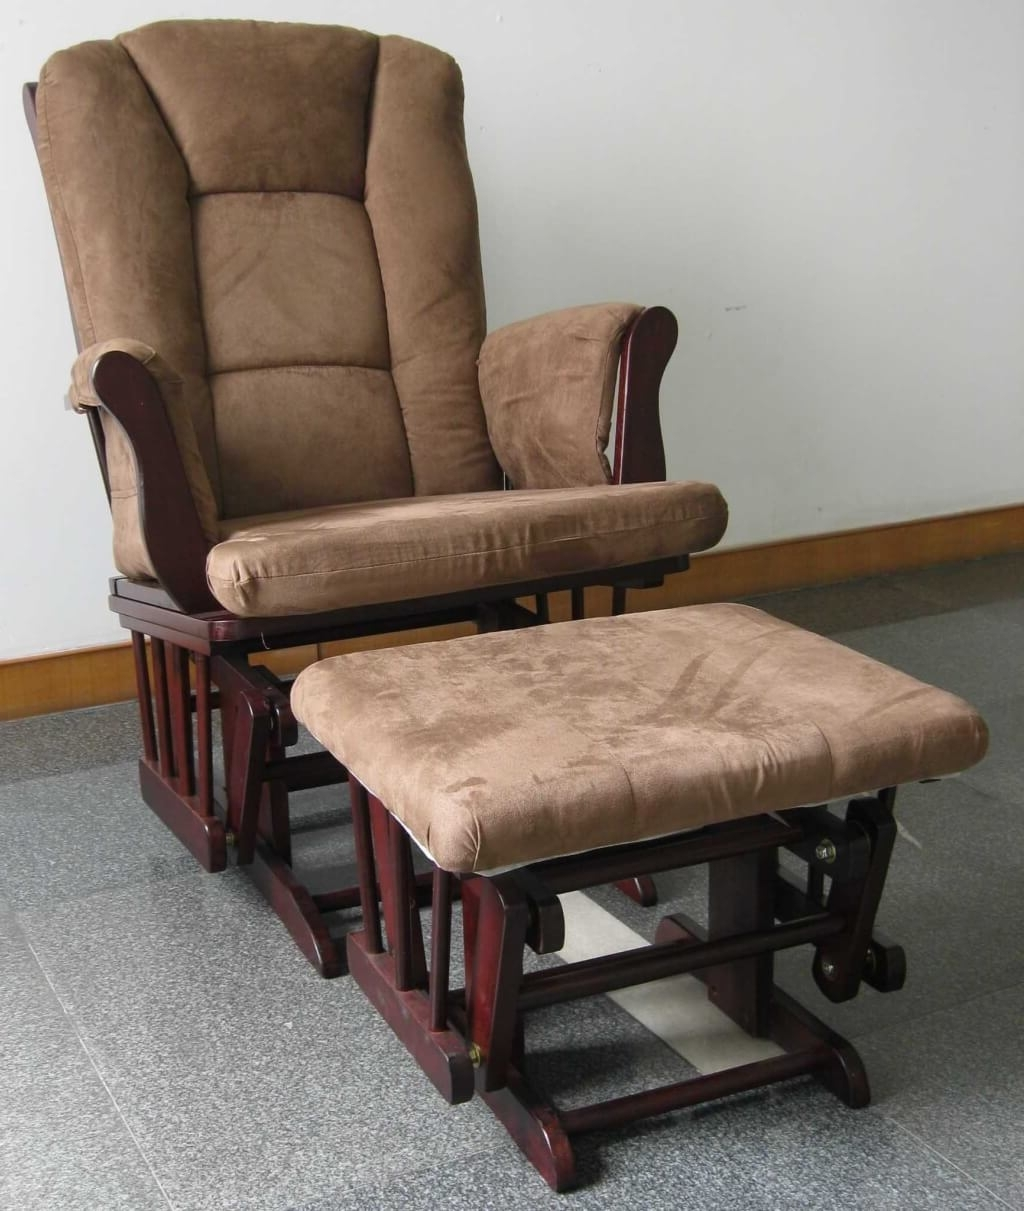 Rocking Chairs With Footrest Pertaining To Trendy Beautiful Wooden Rocking Chairs Prices 11 Furniture Upholstered (View 11 of 20)